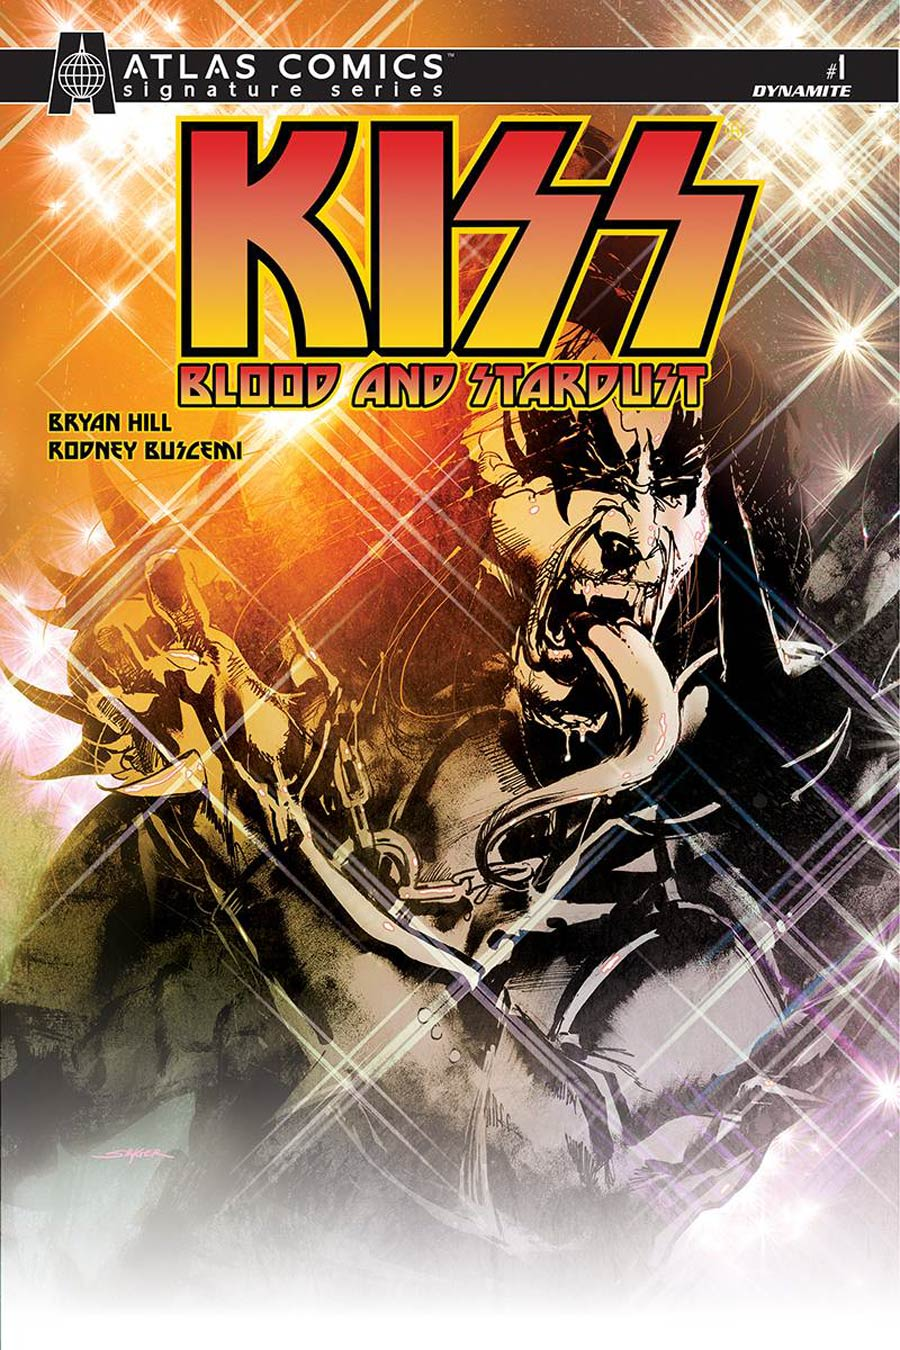 KISS Blood And Stardust #1 Cover M Atlas Comics Signature Series Signed By Bryan Hill